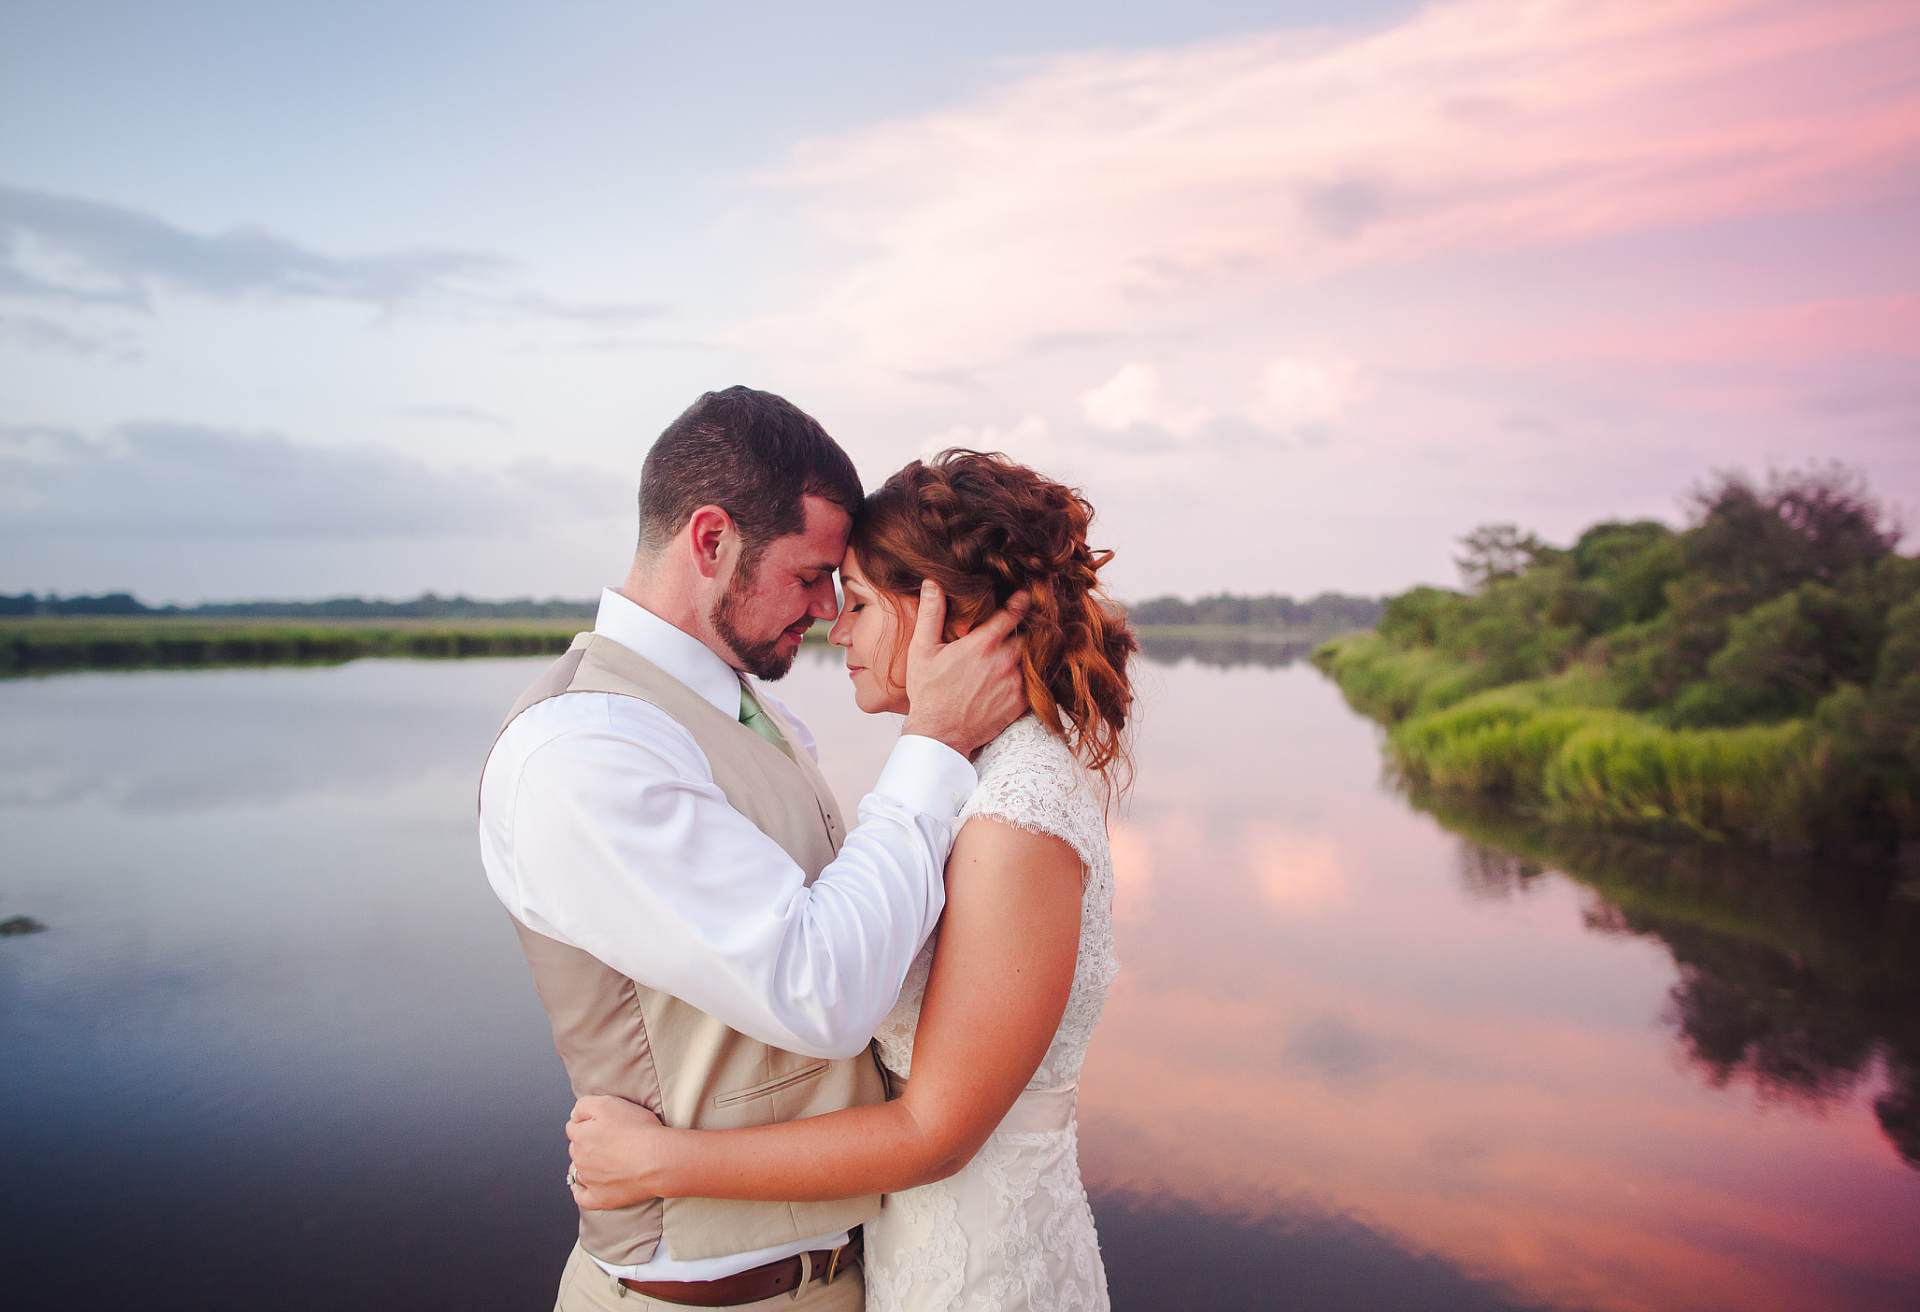 River Sunset with bride and groom wedding portrait